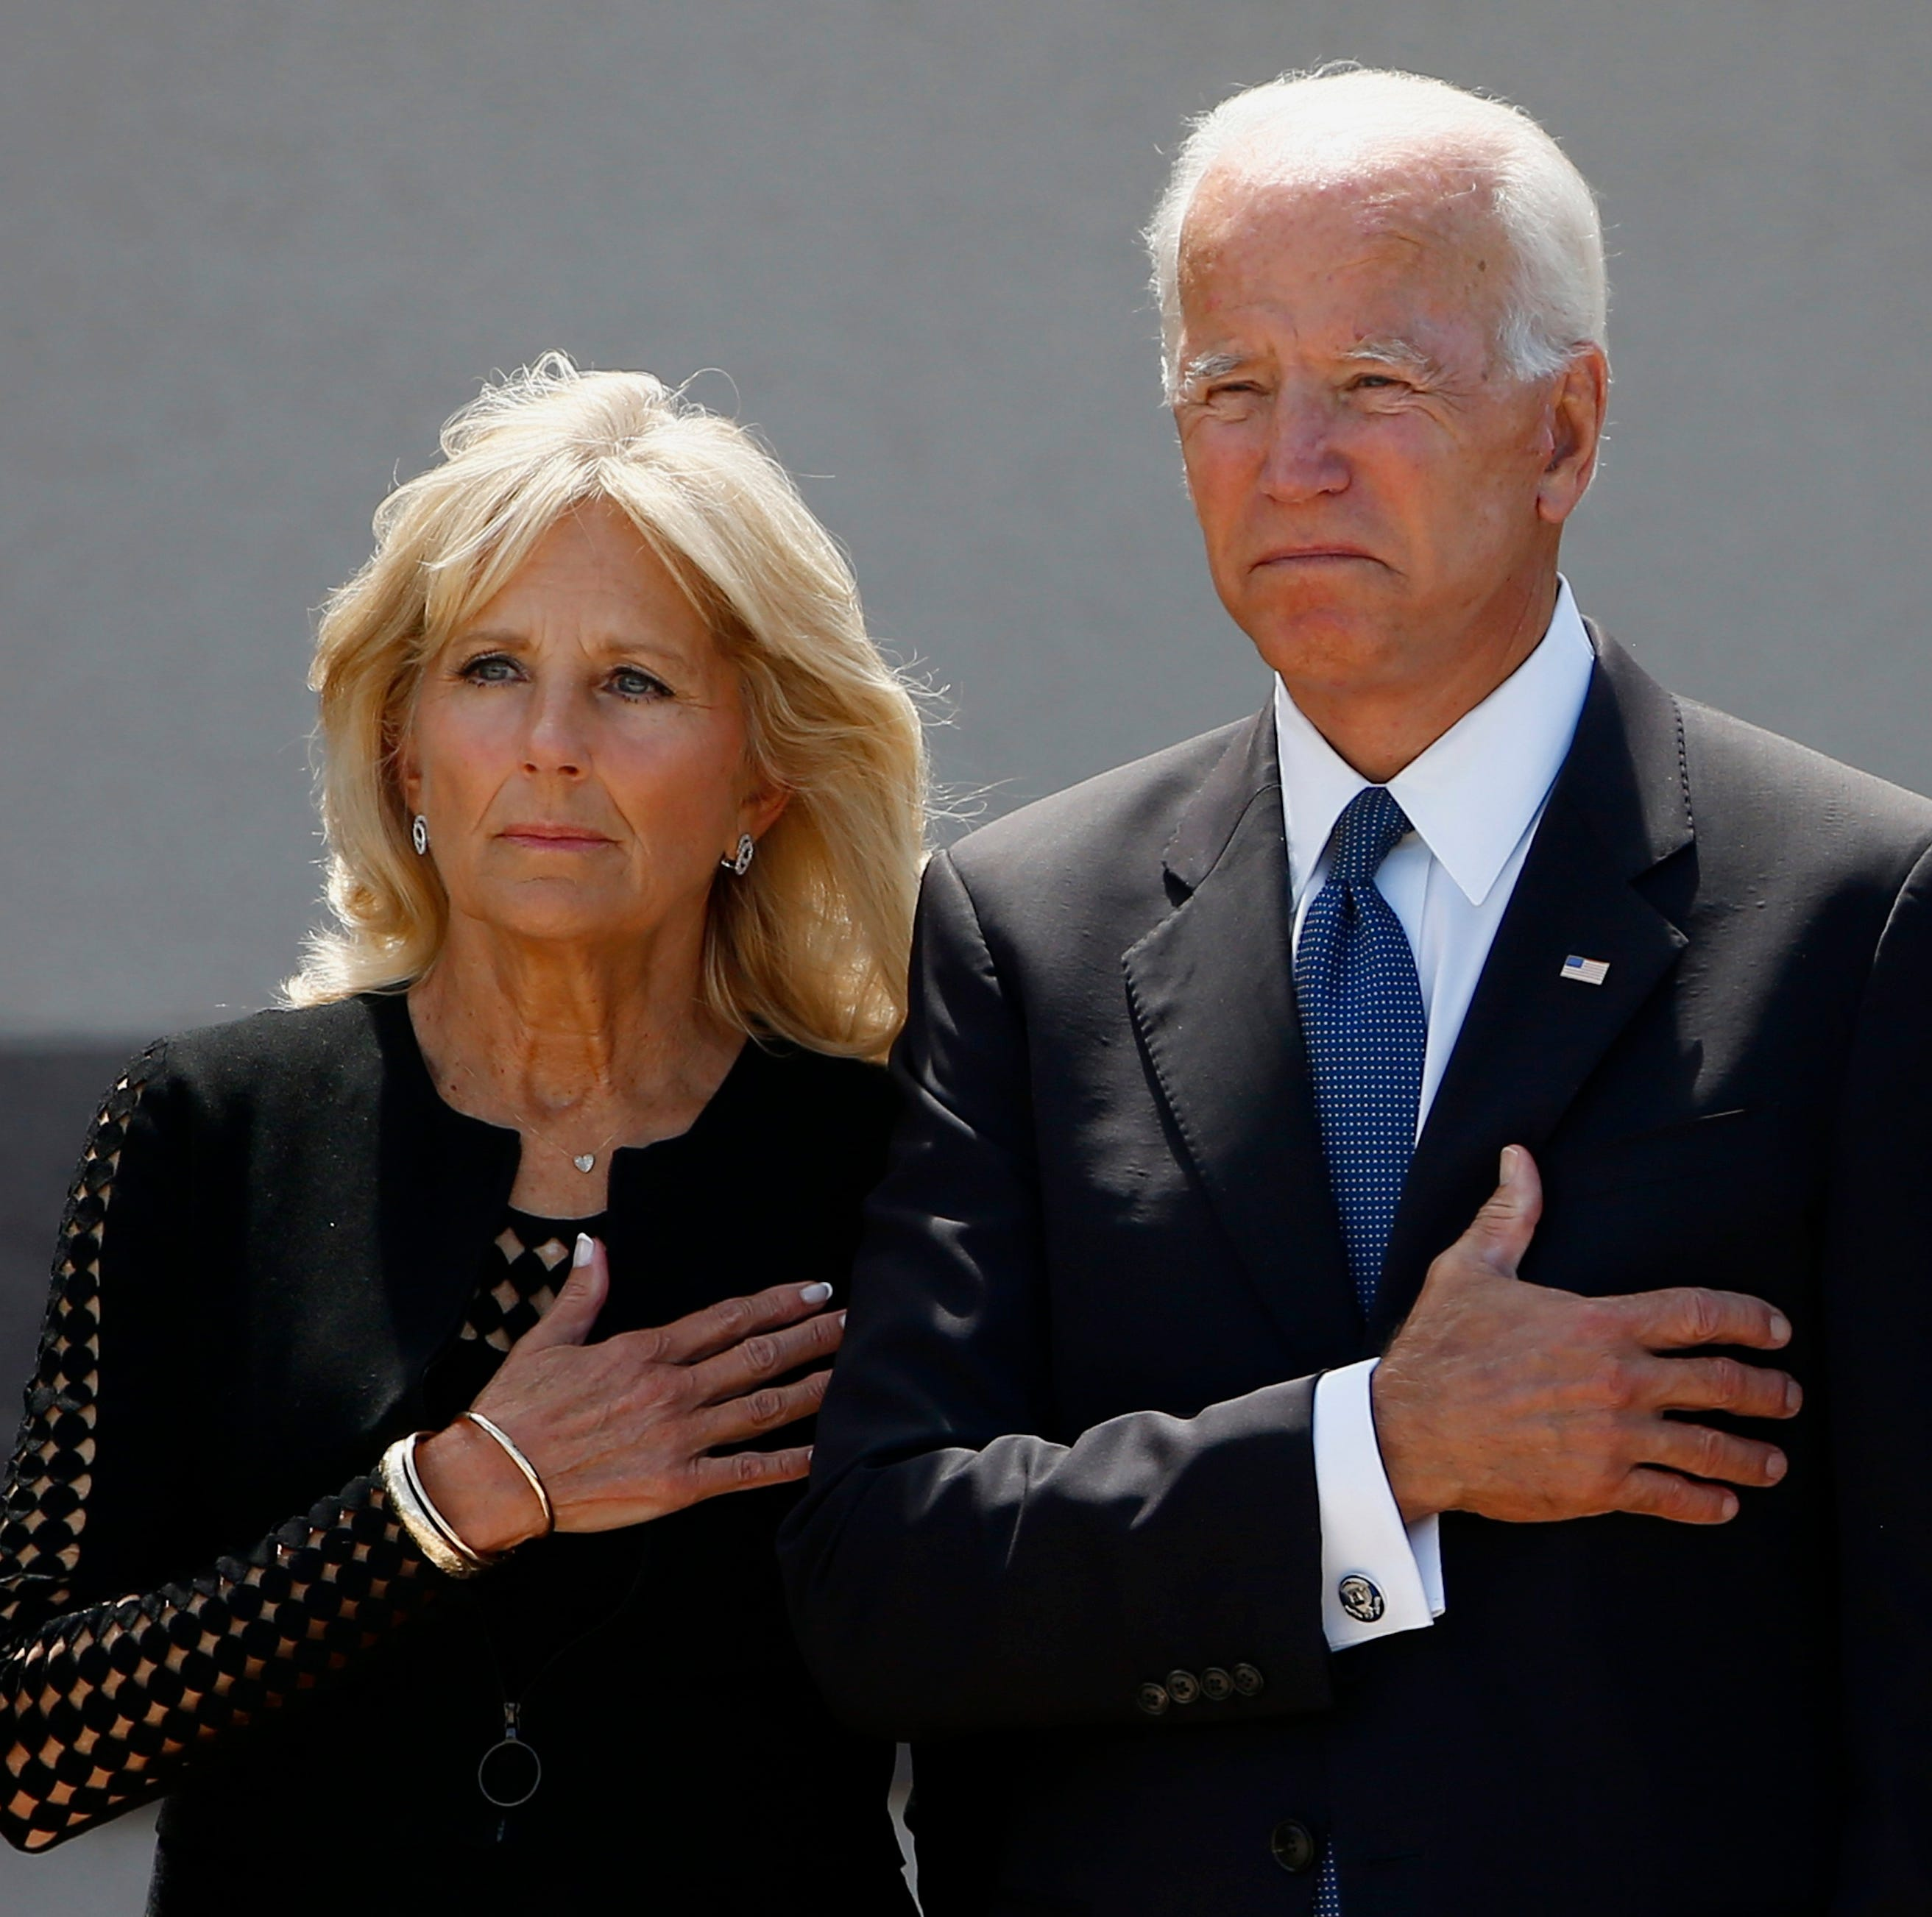 Joe Biden tribute to McCain: 'John's story is the American story'